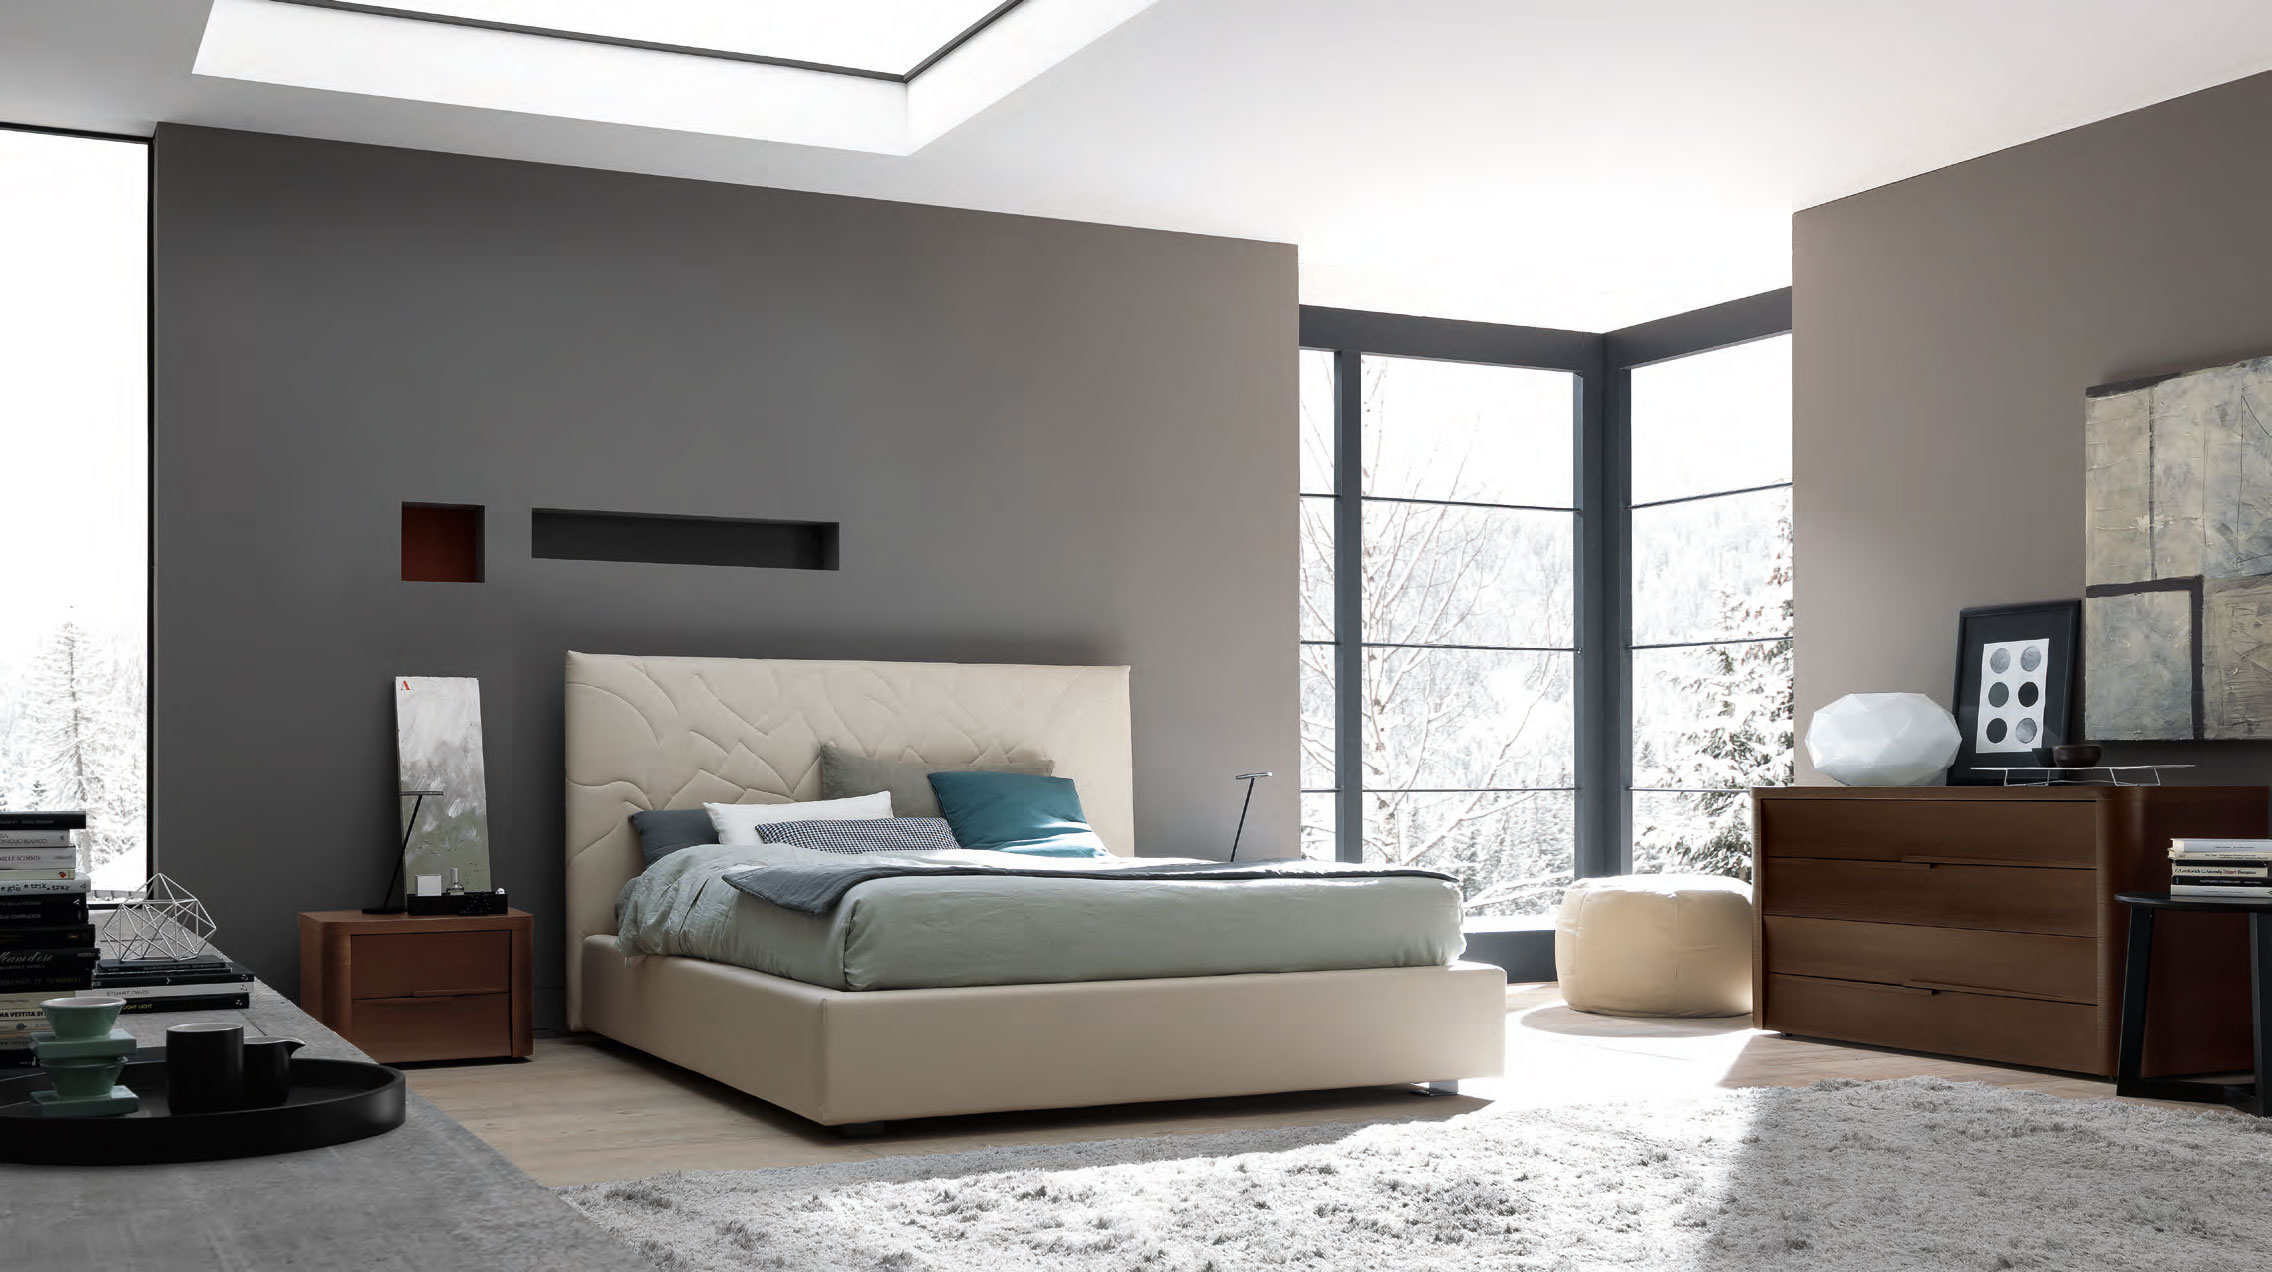 10 eye catching modern bedroom decoration ideas modern for Stylish bedroom